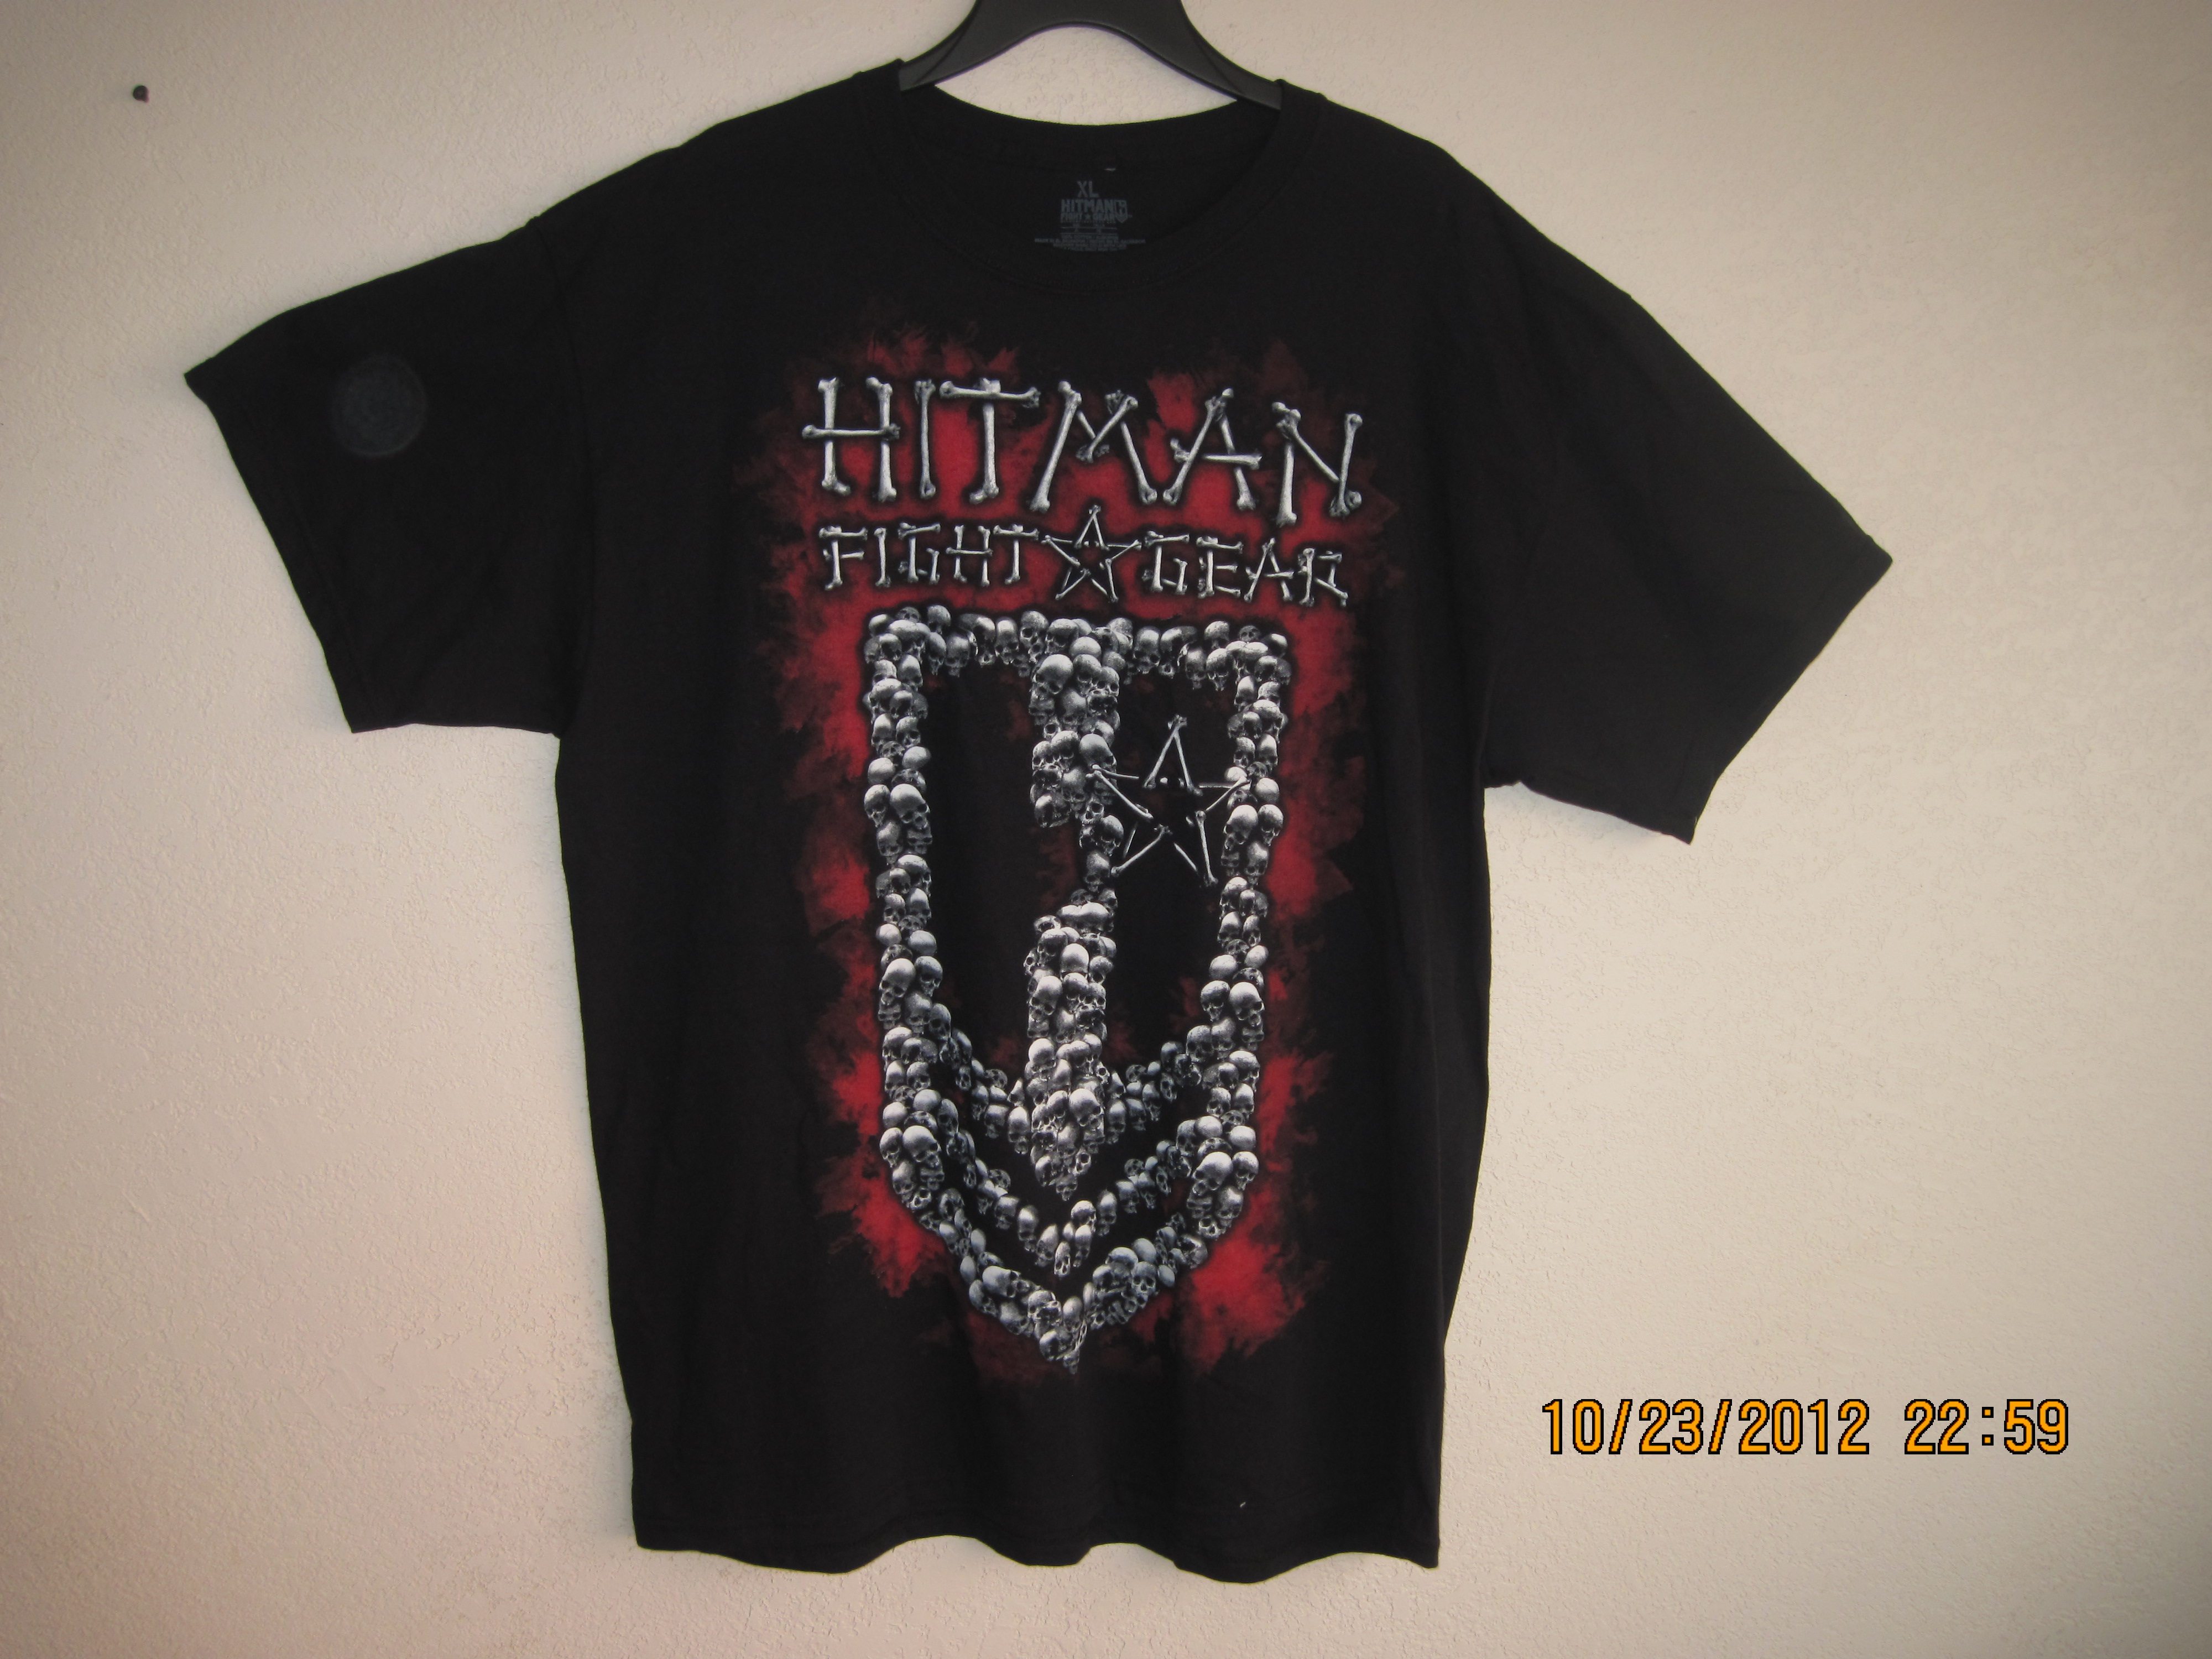 Hitman Fight Gear SzXL T- Shirt with Skulls Black, Red, White